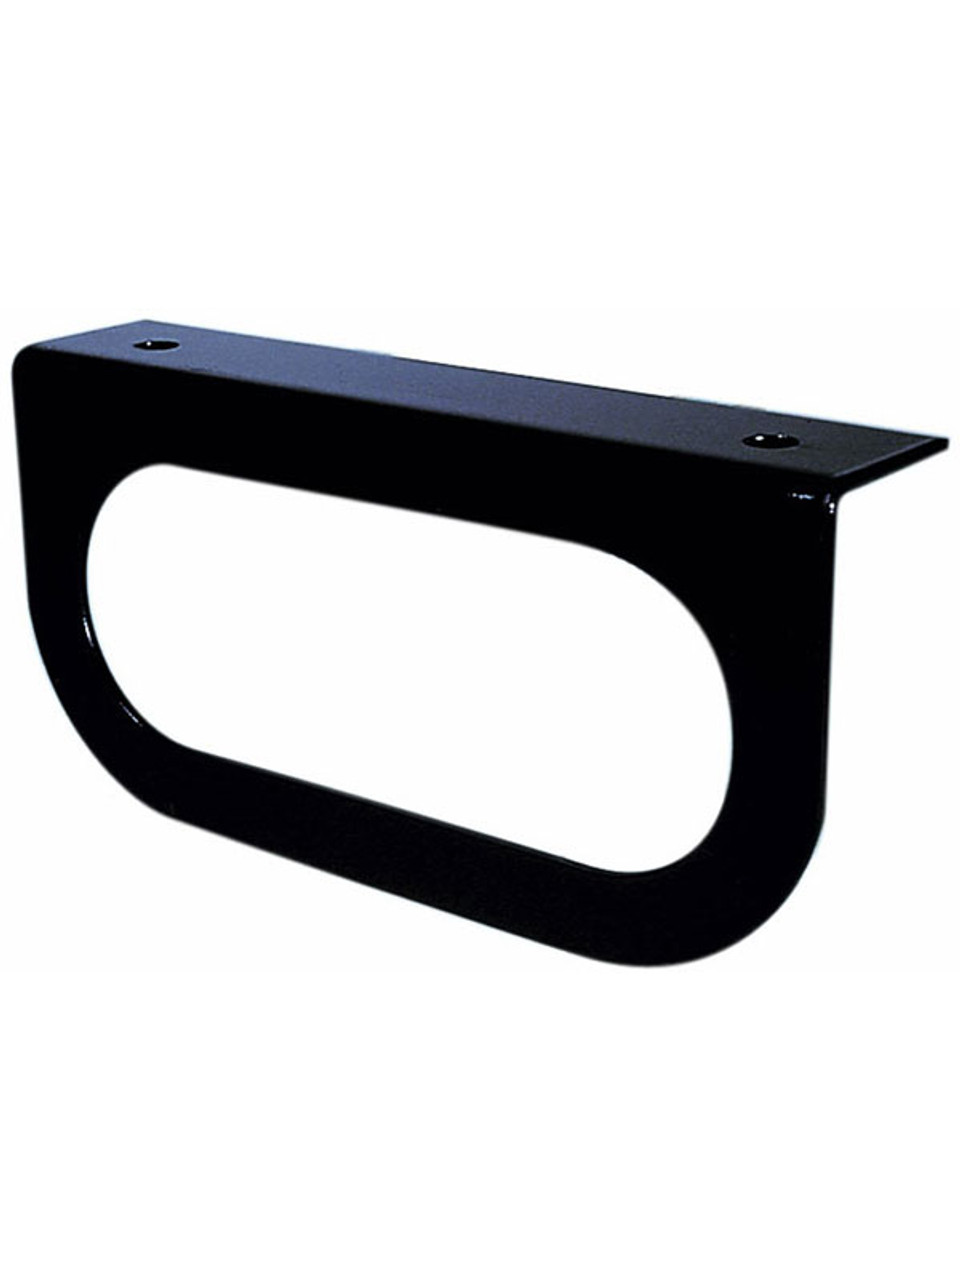 421-09 --- Peterson Oval Mounting Bracket